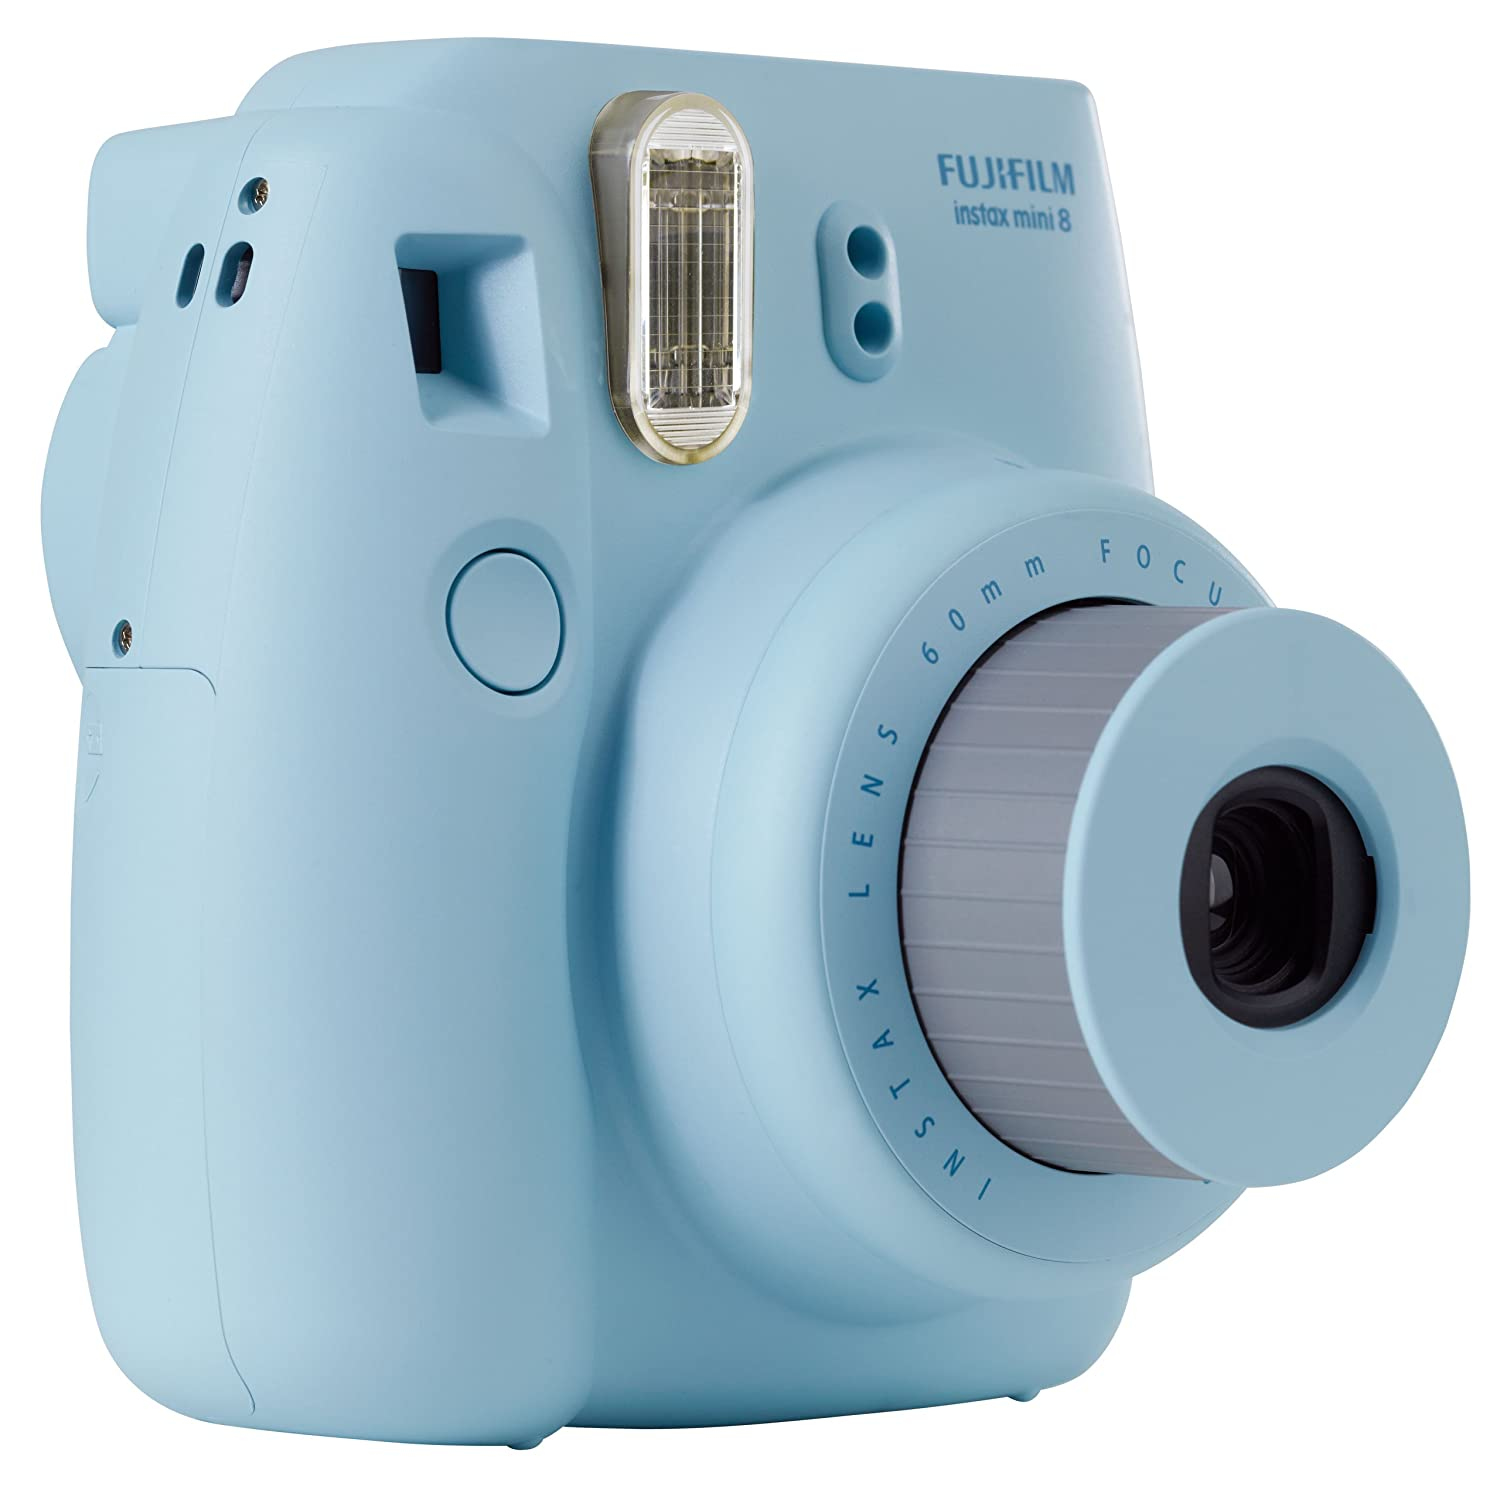 Fujifilm Instax Mini 8 Instant Camera Blue 8s One Piece Discontinued By Manufacturer Polaroid Photo